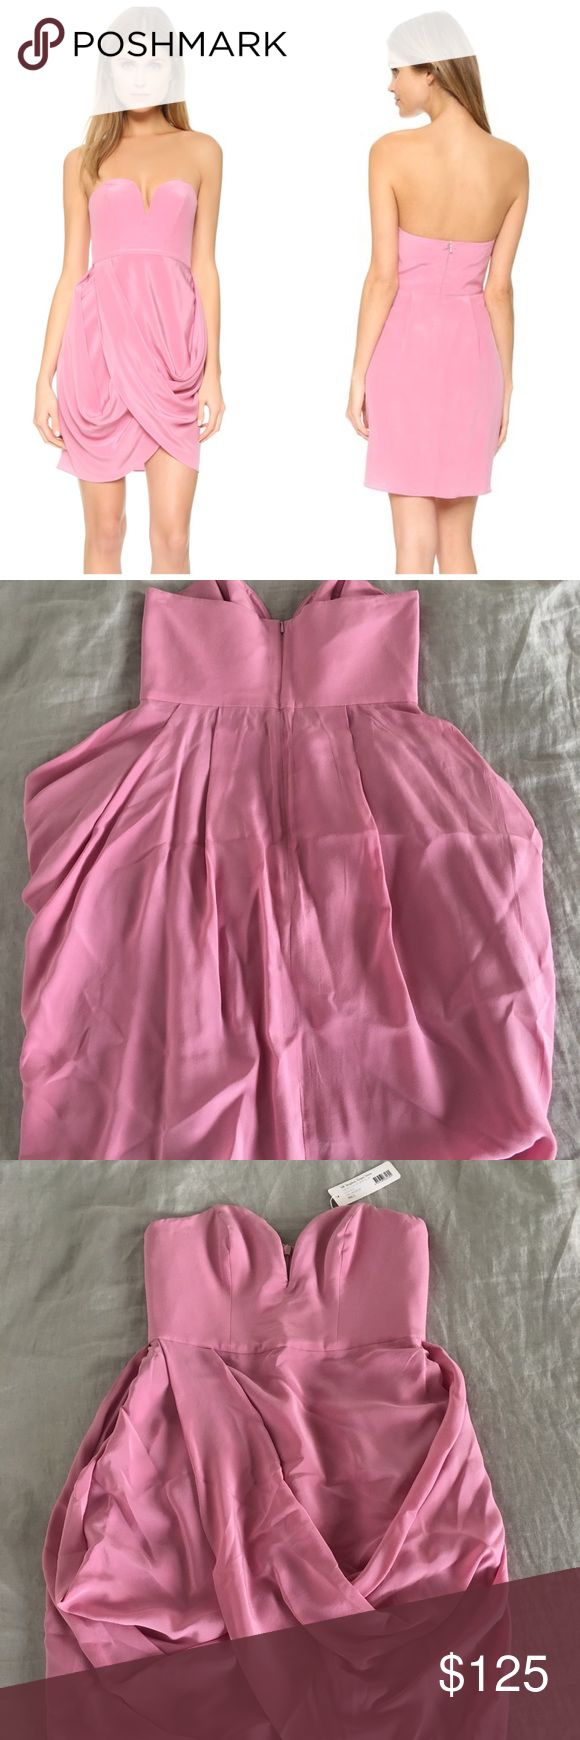 ✨NWT Zimmermann Silk Draped Dress New with tags! Bought from Shopbop at full price a while ago and never worn. Only imperfection is some hanger marks that can be smoothed out with a steam. Zimmermann Dresses Mini